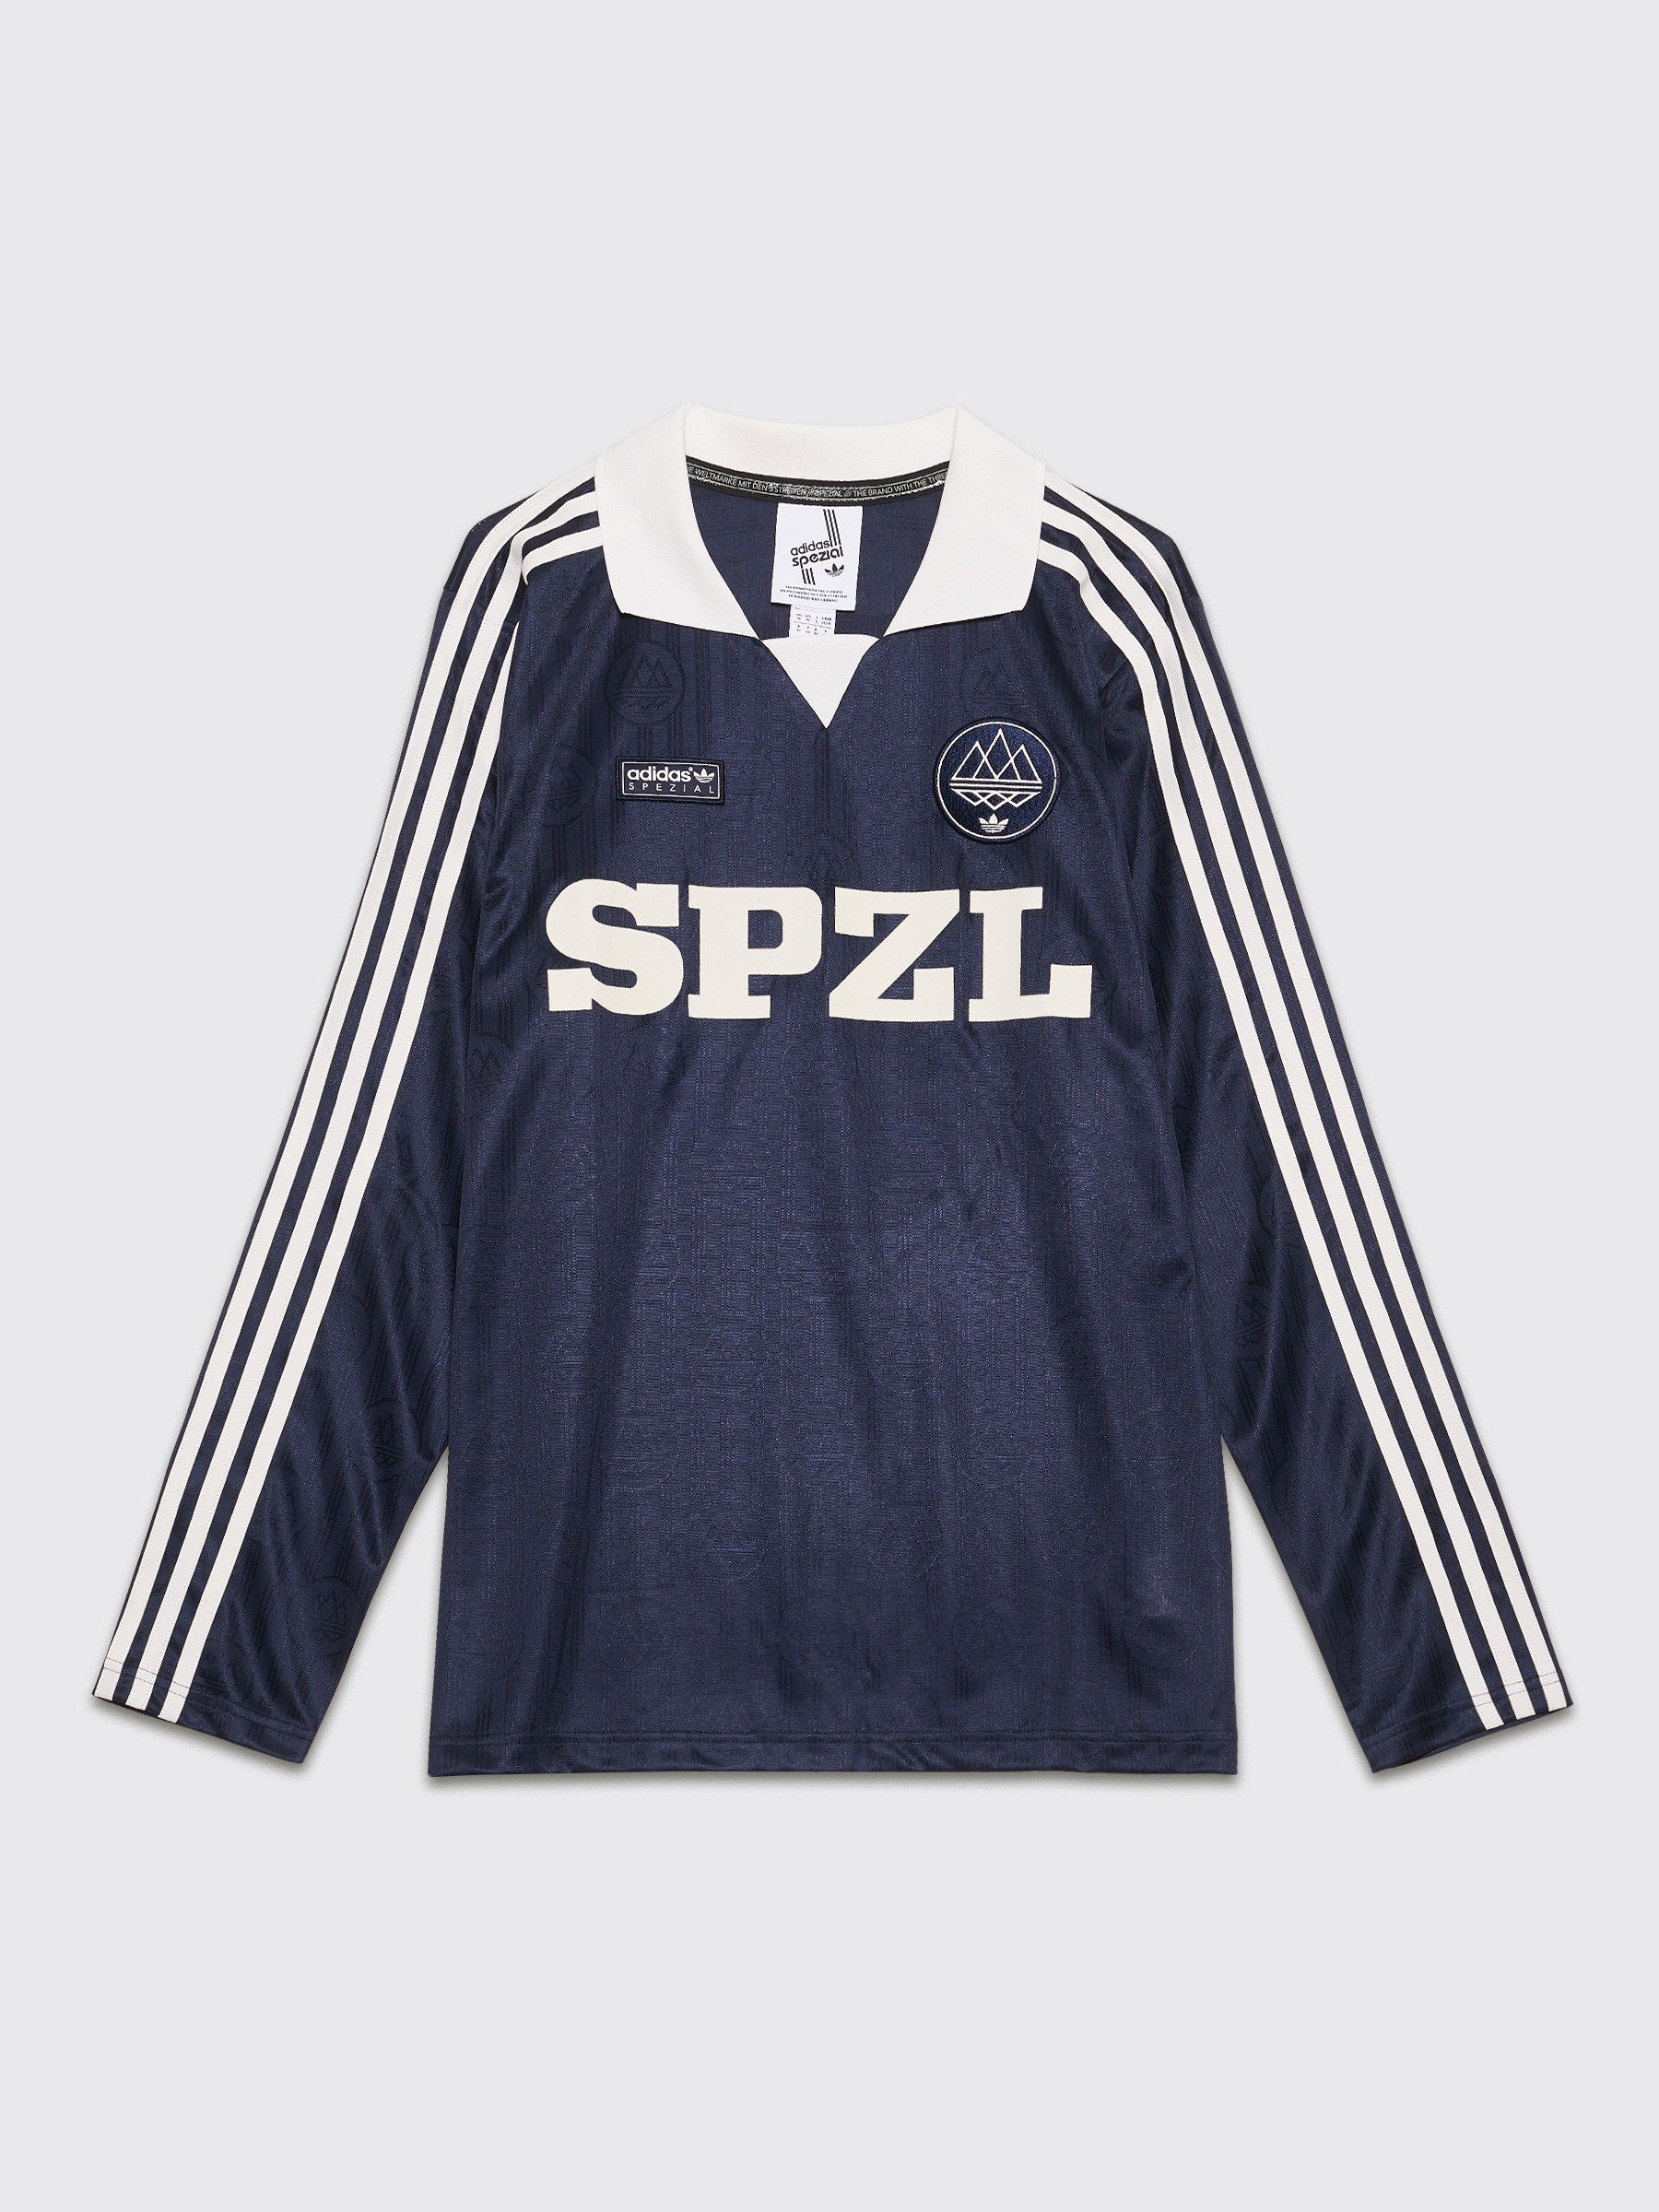 a35a444ad157f4 Très Bien - adidas Spezial Lymwood Jersey Top Core White   Night Navy